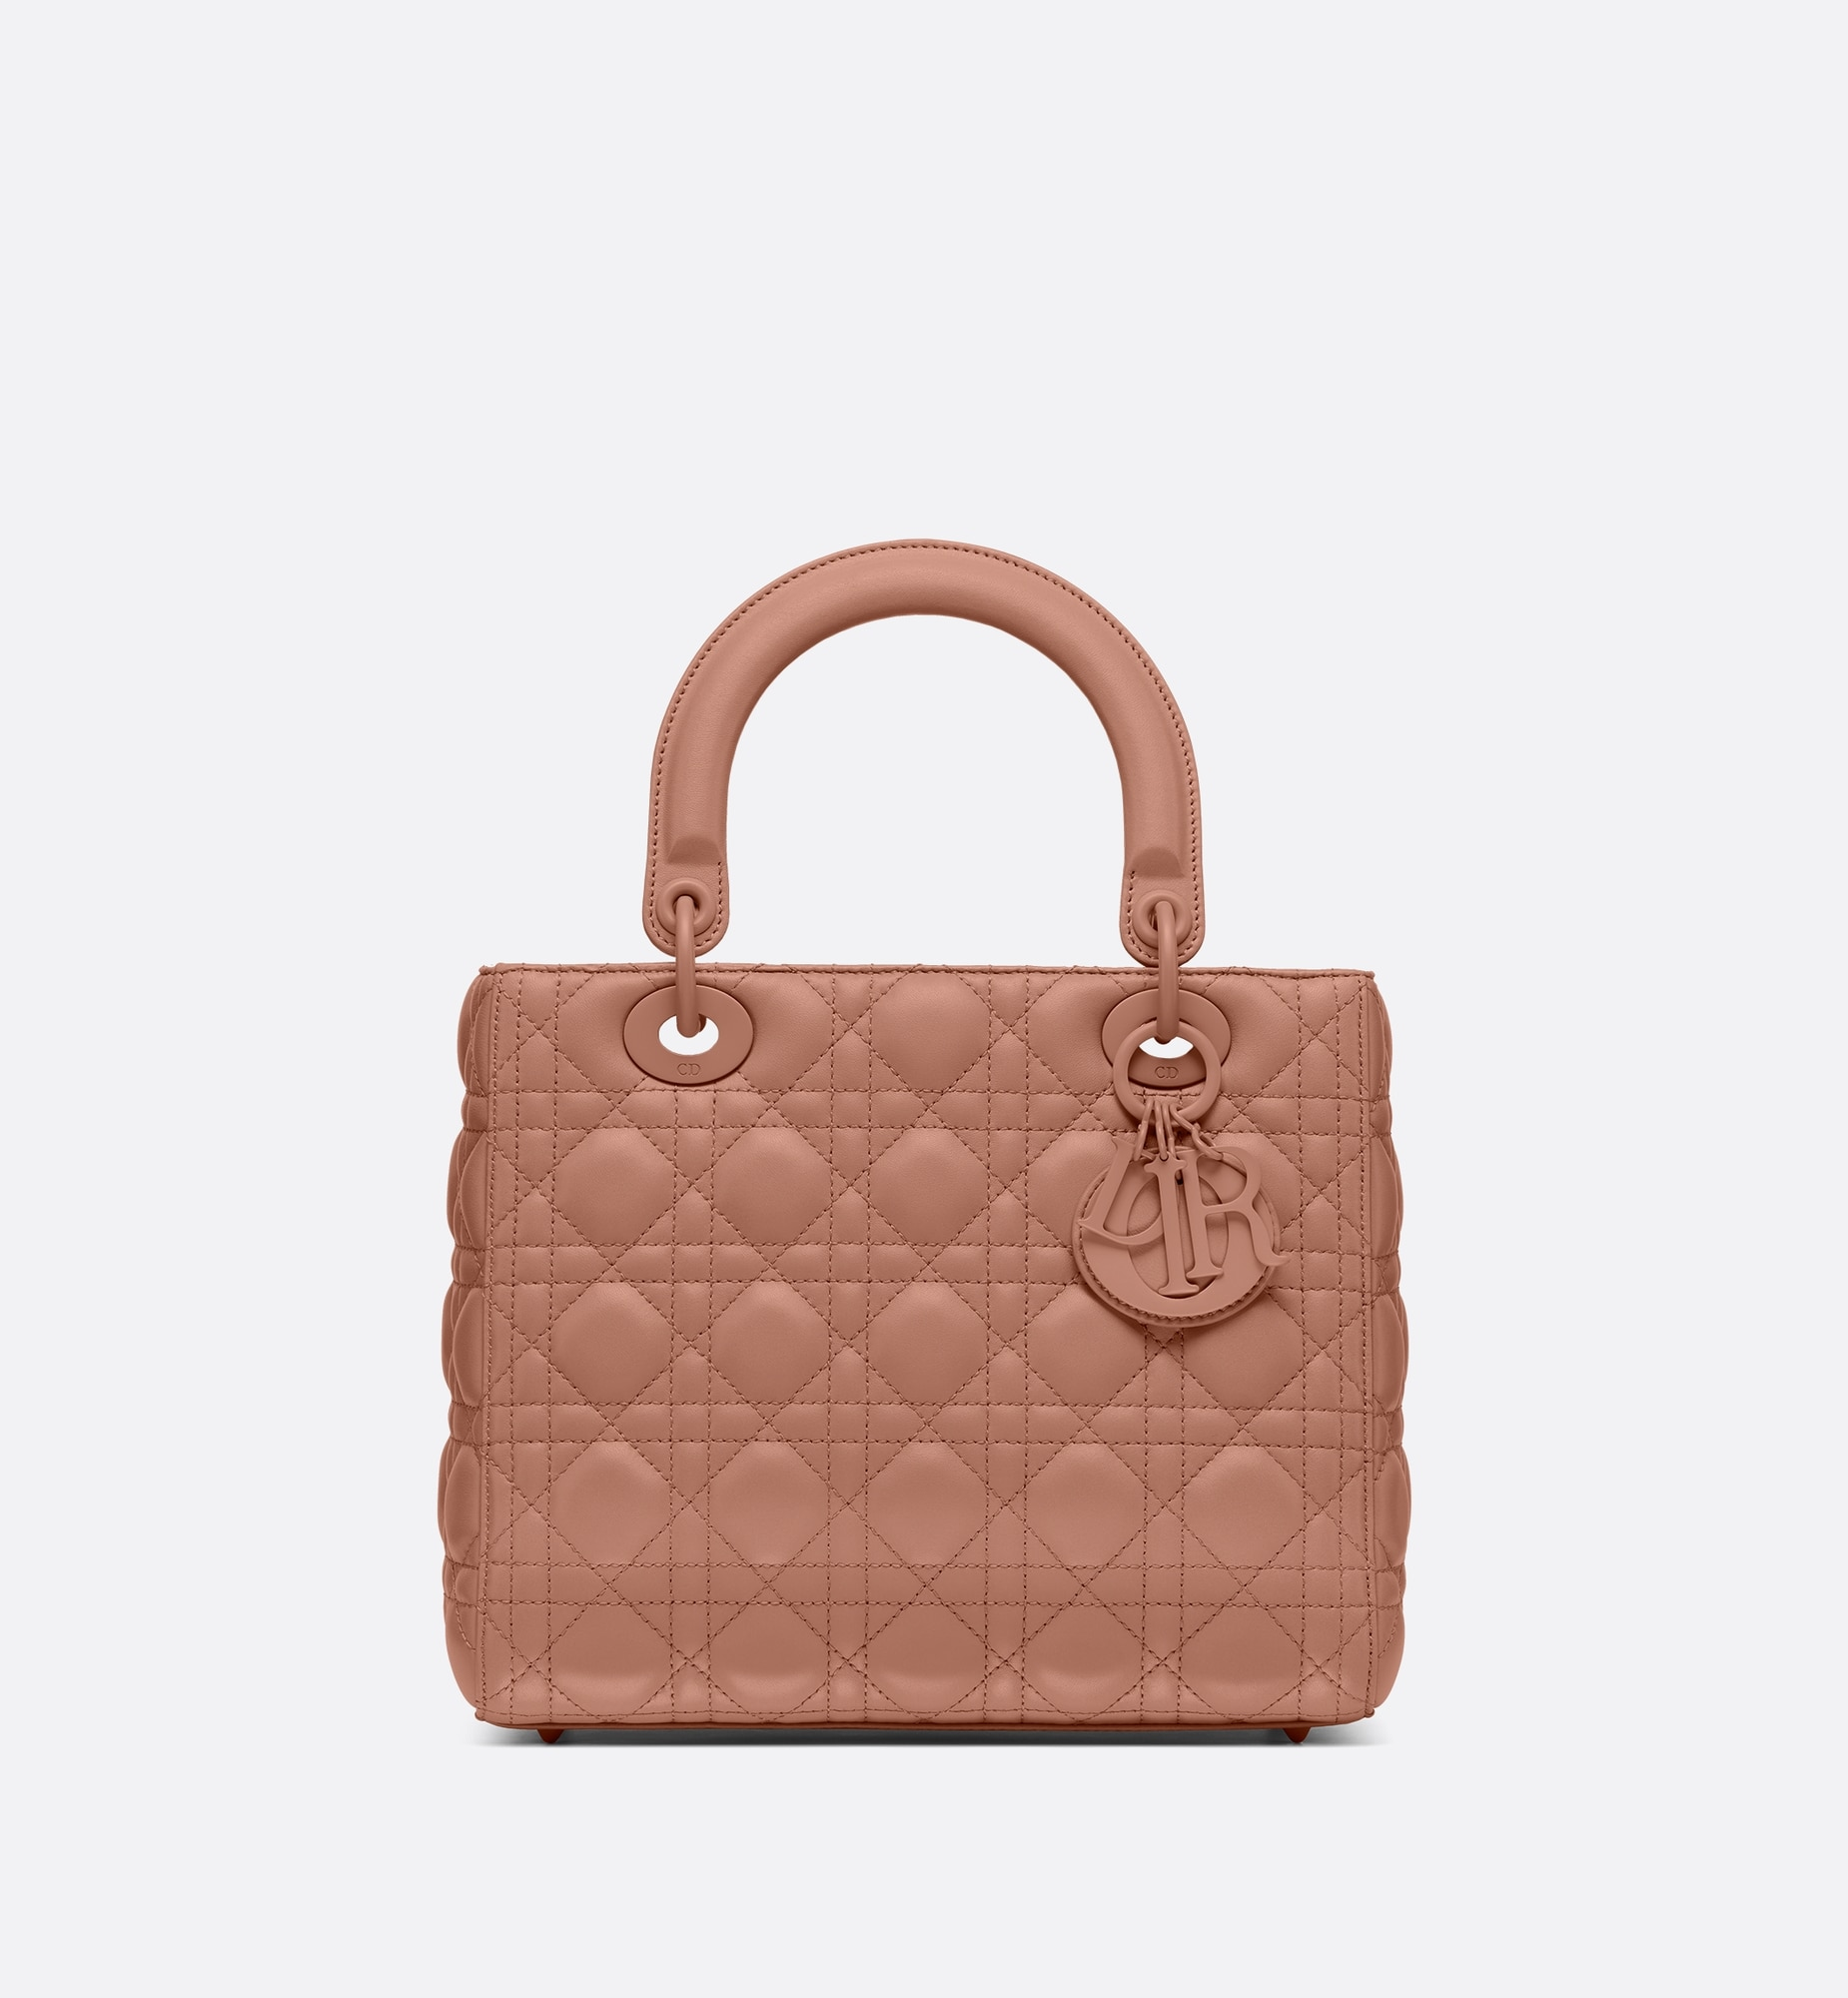 Medium Ultramatte Lady Dior Bag Front view